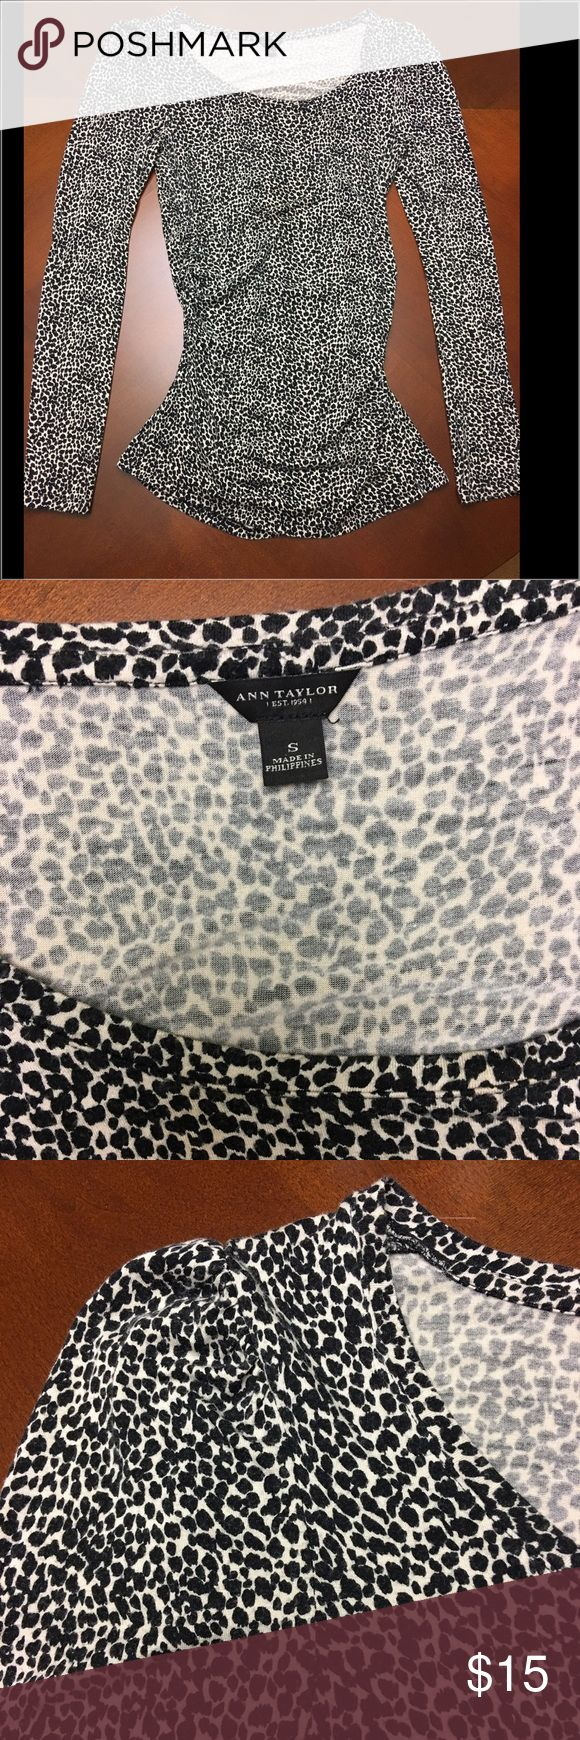 Ann Taylor animal print top Ann Taylor animal print top. Cinched on sides of waist. Fun top. Fits snug, comfortable, and sexy Ann Taylor Tops Blouses